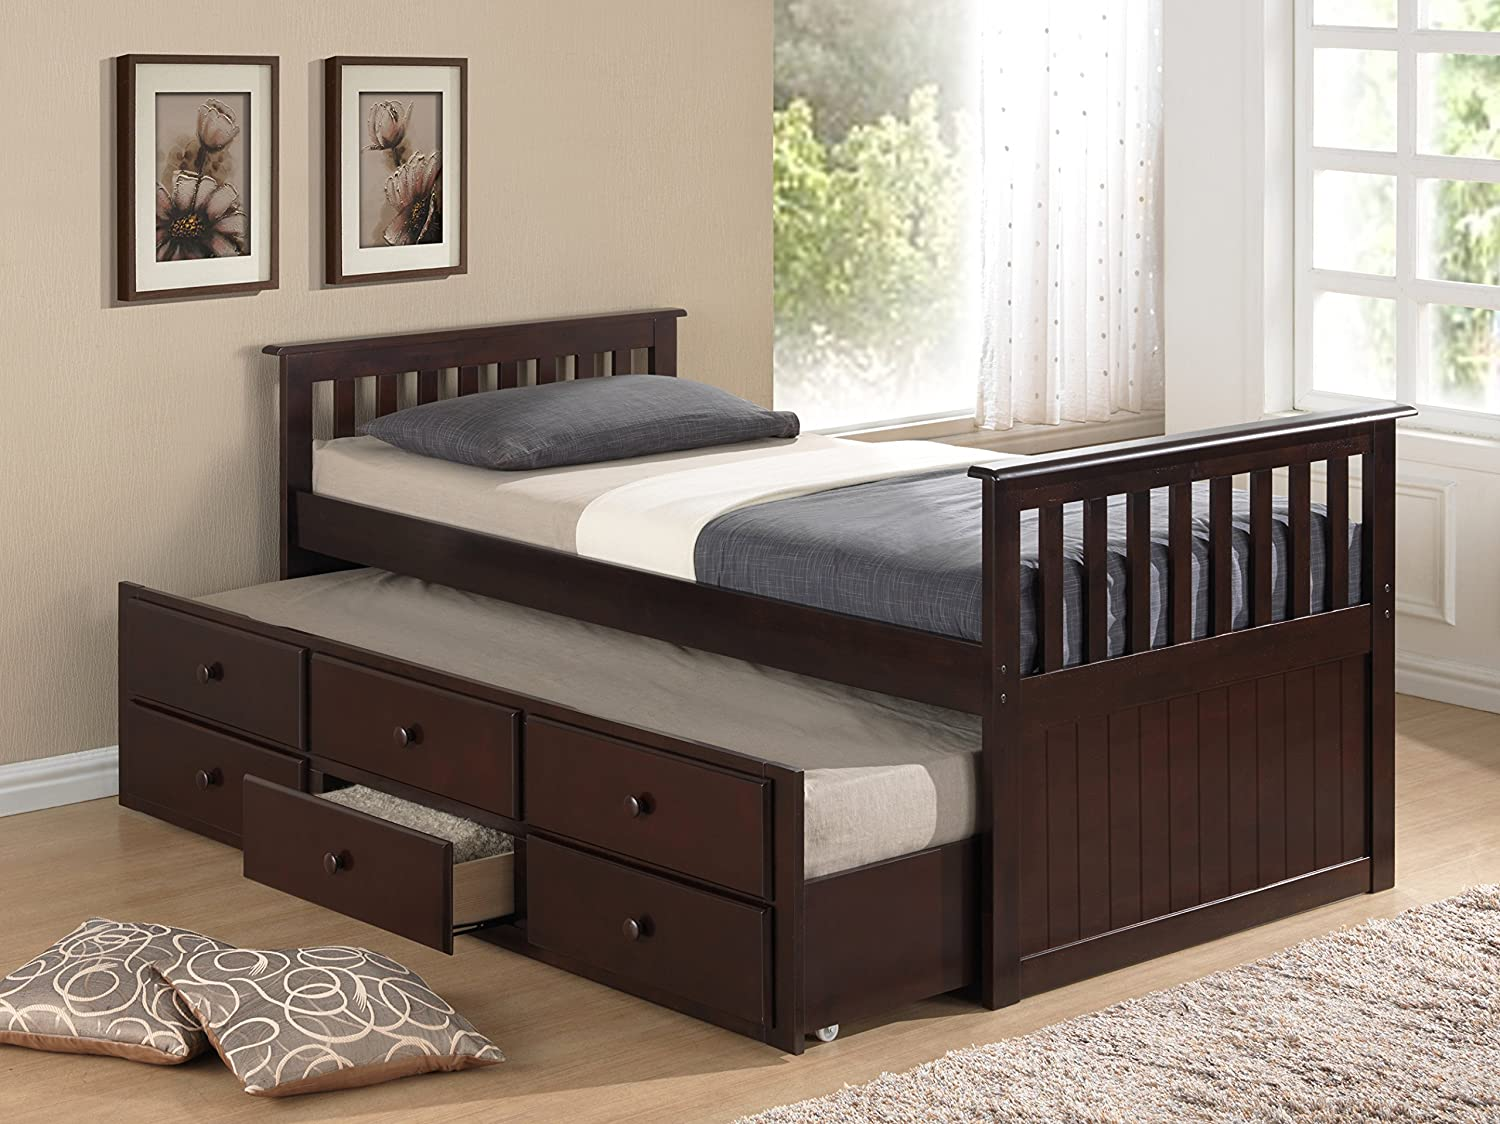 Amazon Broyhill Kids Marco Island Captains Bed With Trundle And Drawers Espresso Kitchen Dining